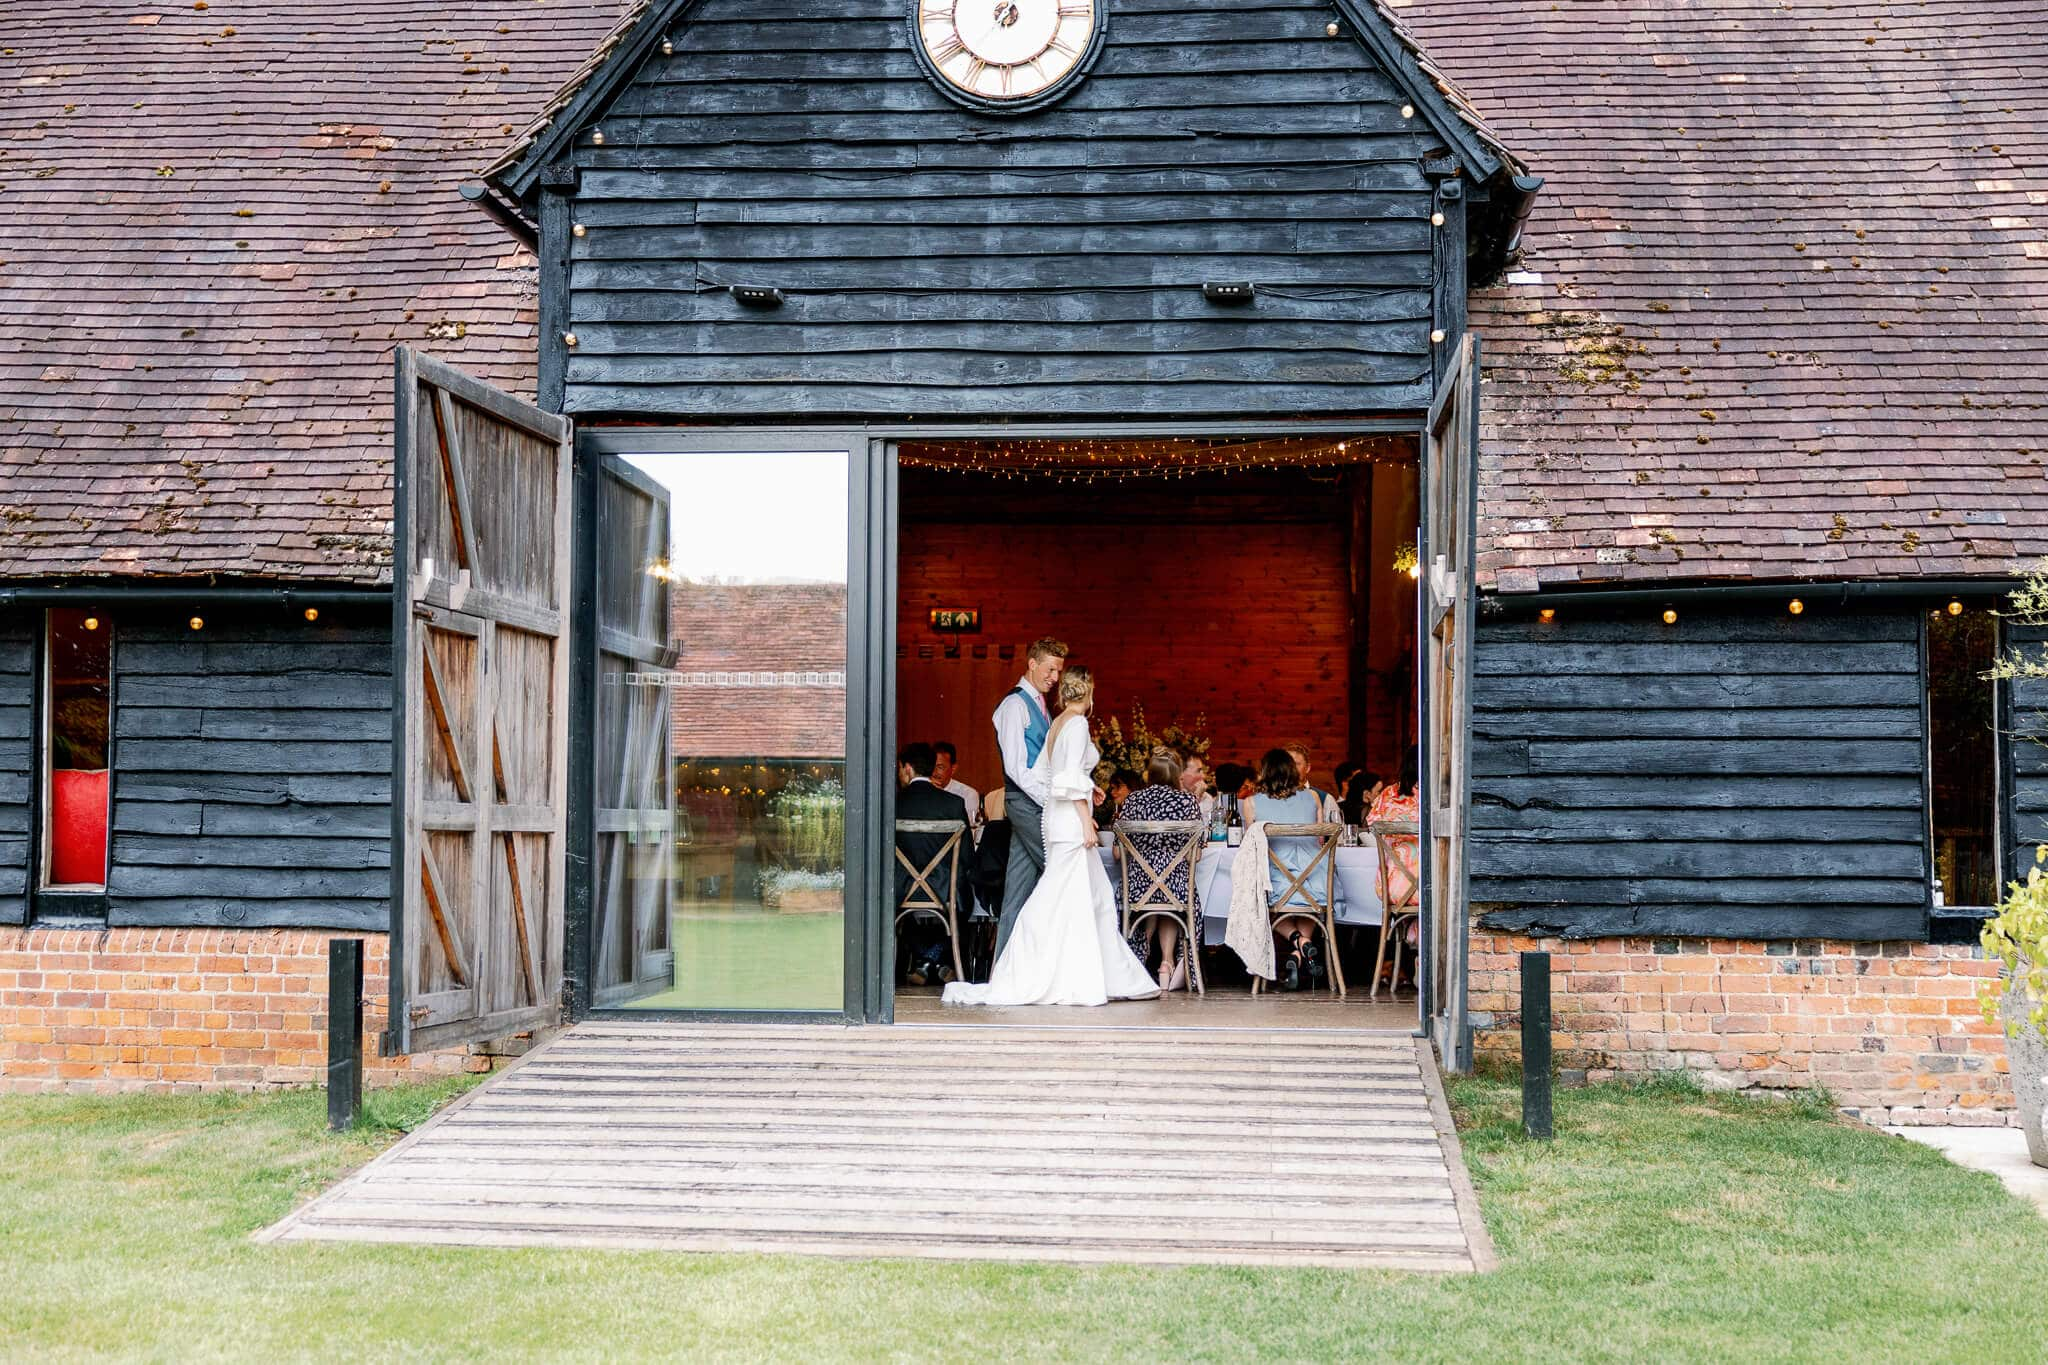 Lains Barn wedding venue with couple in Oxfordshire